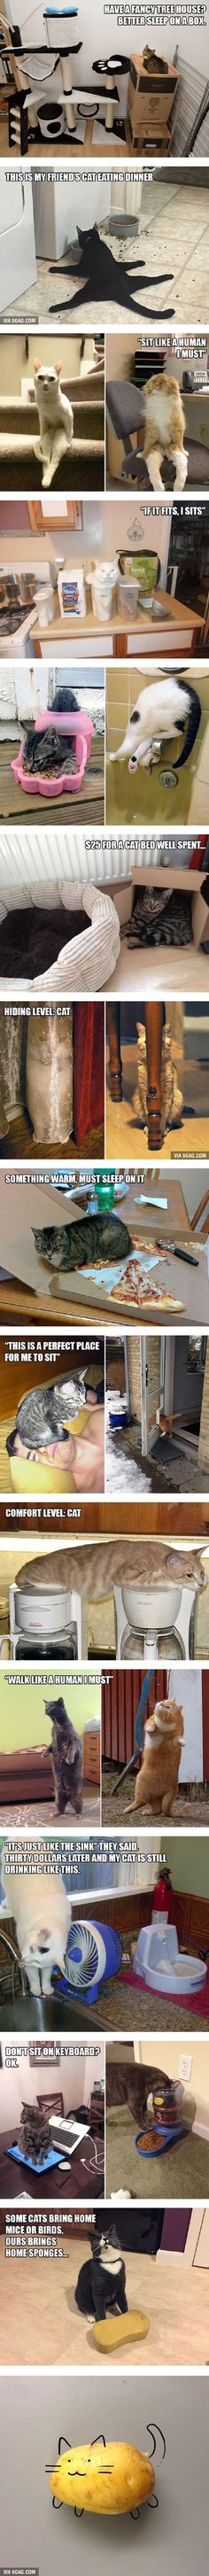 20 Funny Examples of Cat Logic